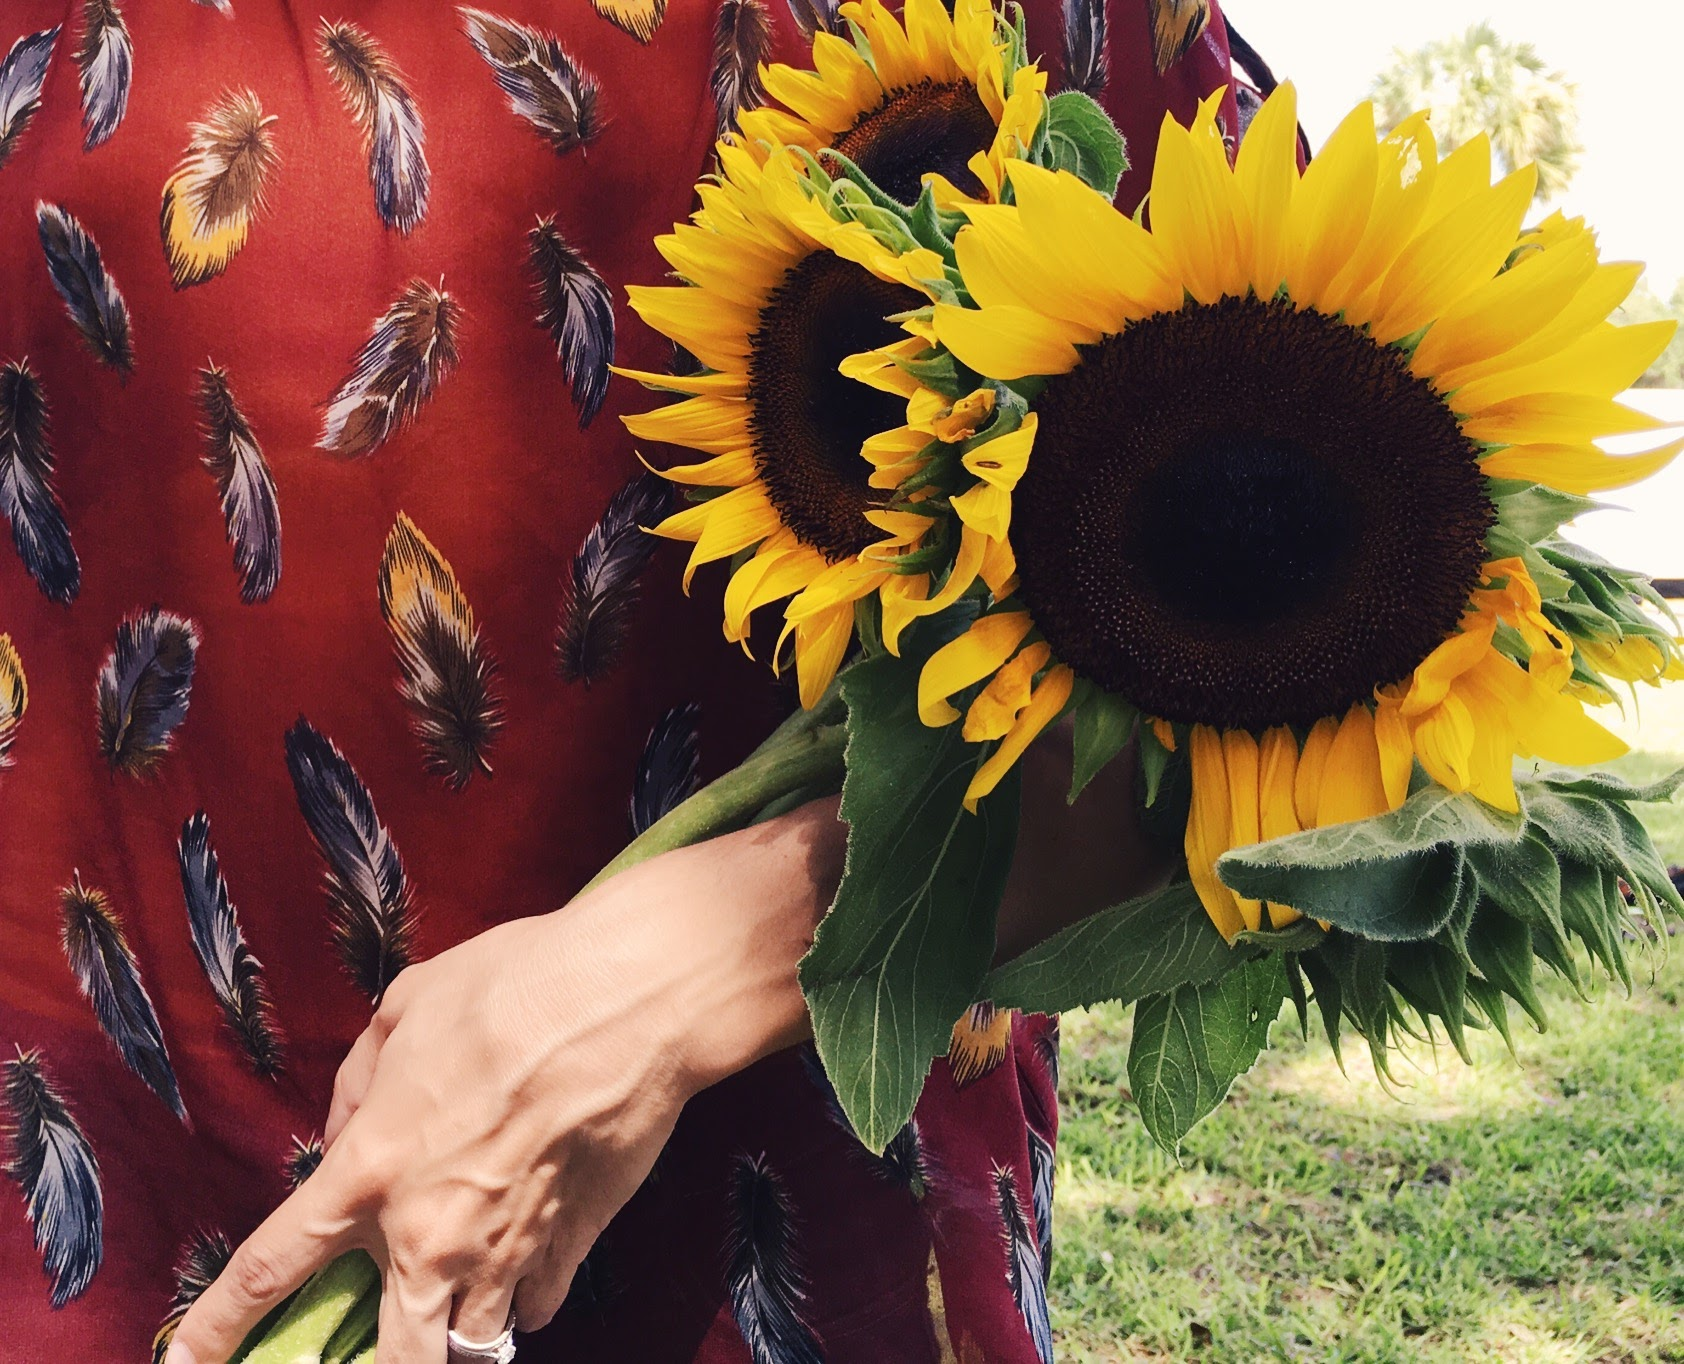 sunflowers, a Saturday photo story | Feathers and Roots